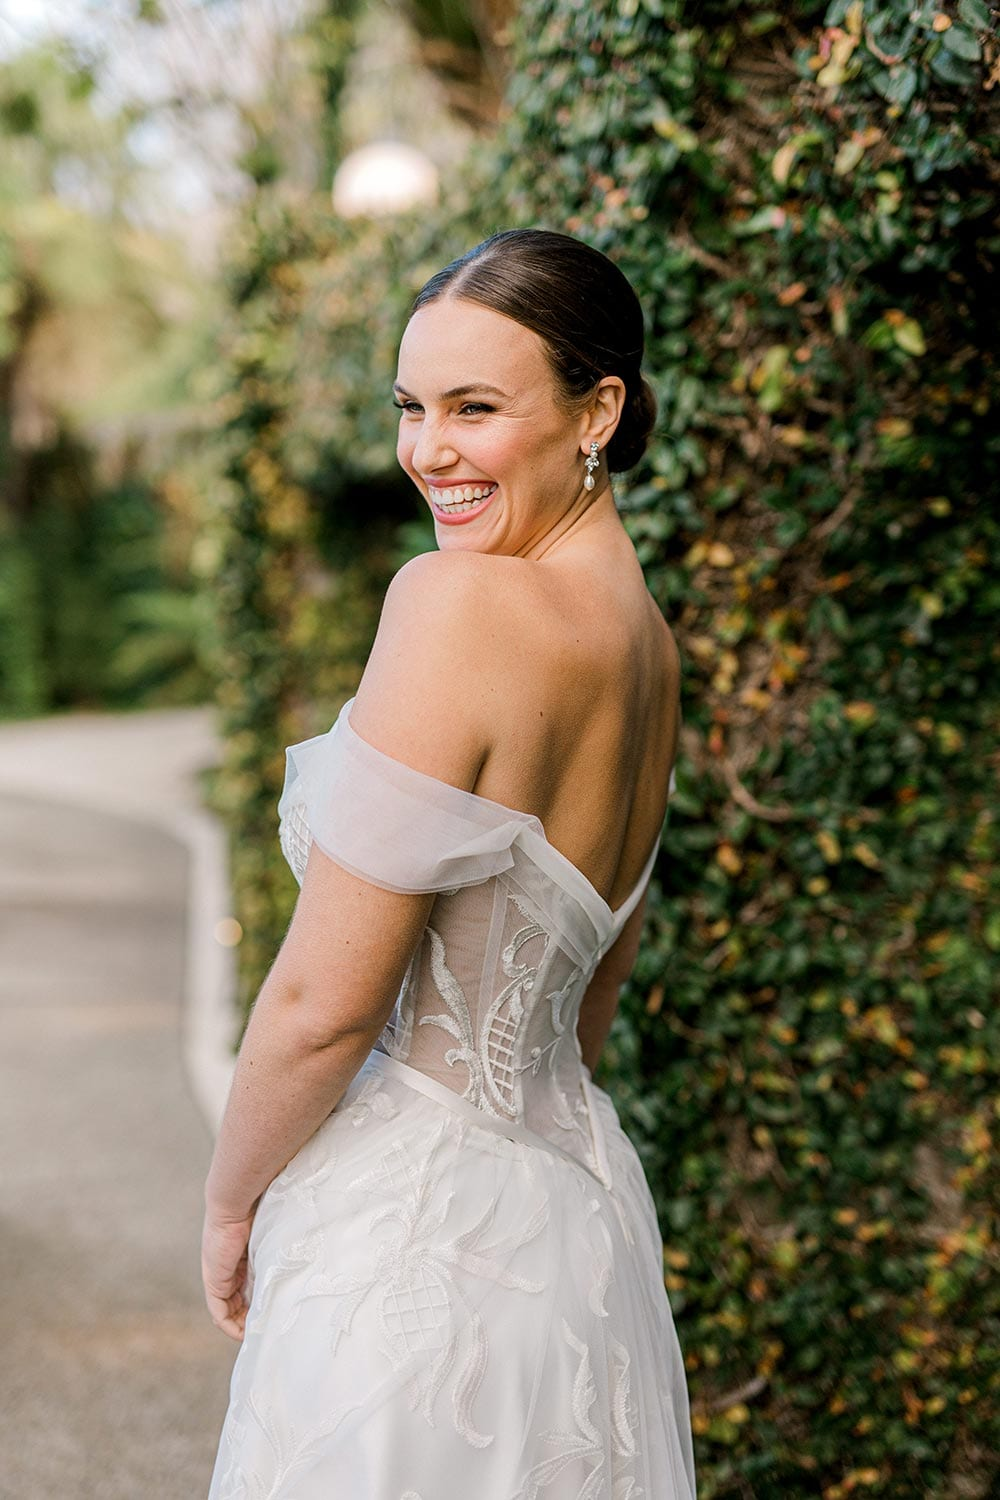 Zoe wedding dress by Vinka Design - a romantic & dreamy off-shoulder gown with a structured, boned bodice, a full lace & tulle skirt. Semi-sheer bodice with tulle off-shoulder detailing and satin belt. Worn outdoors.